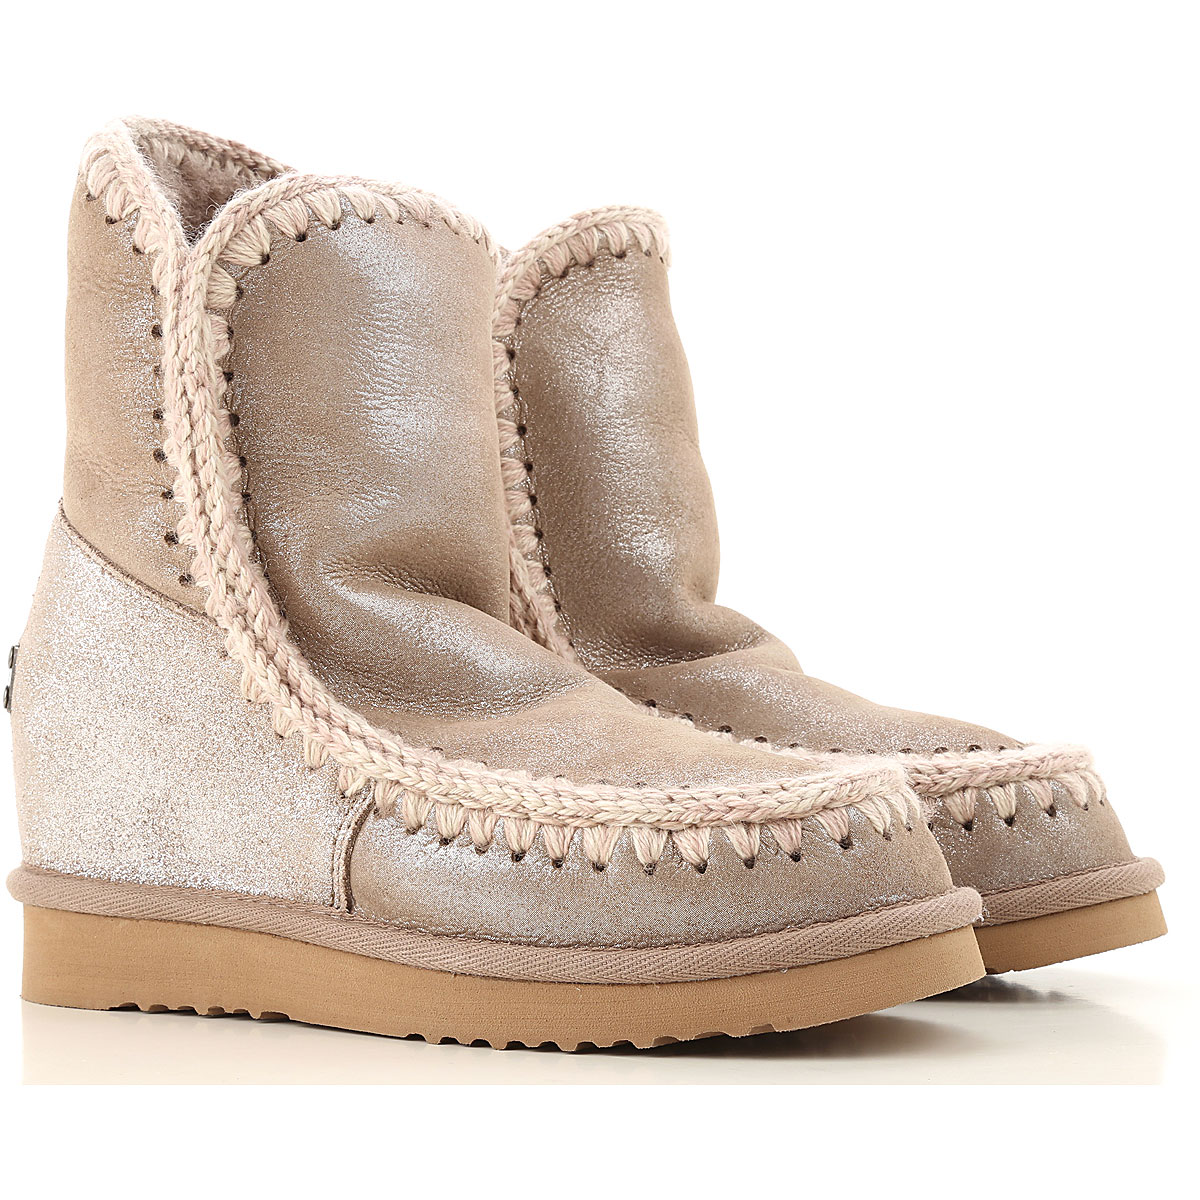 Mou Boots for Women, Booties On Sale, Grey, Leather, 2019, Eu 35 EUR 36 - UK 3 - USA 5.5 EUR 38 - UK 5 - USA 7.5 EUR 40 - UK 7 - USA 9.5